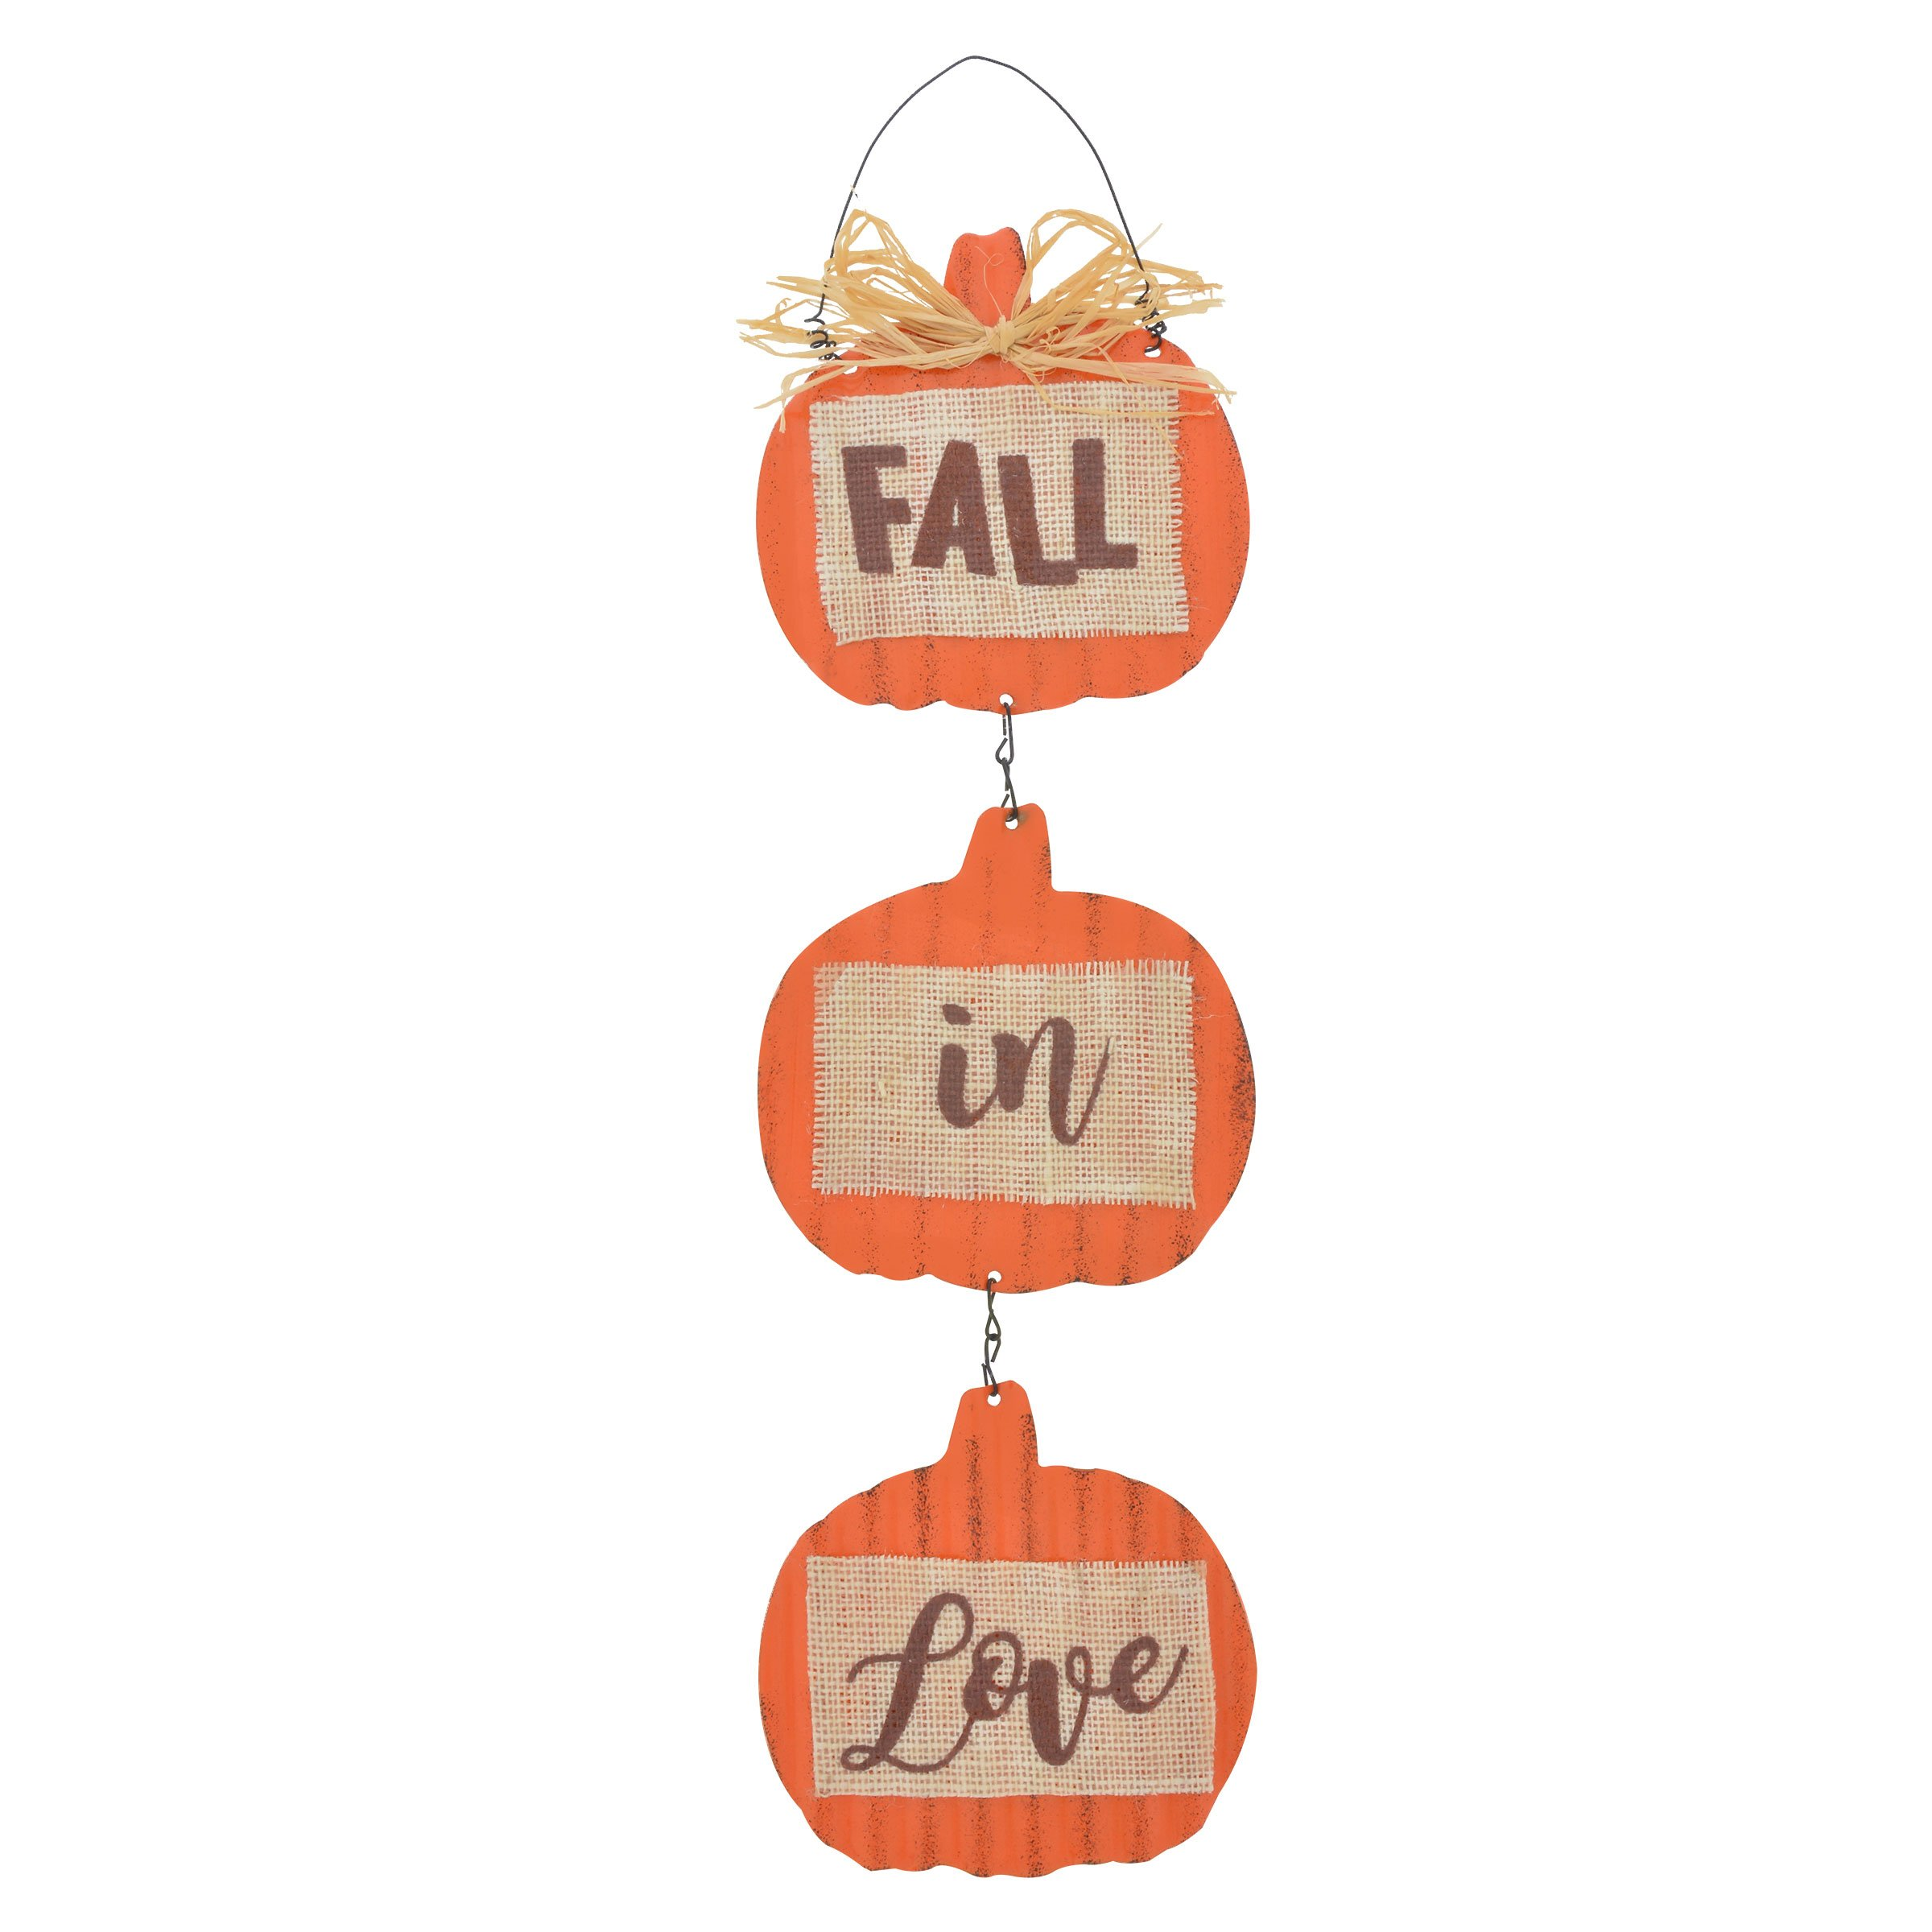 Rustic Looking Metal Sign Fall Themed 20-inch Pumpkins With Burlap Thanksgiving Door Decoration for Home Welcome (Fall in Love)